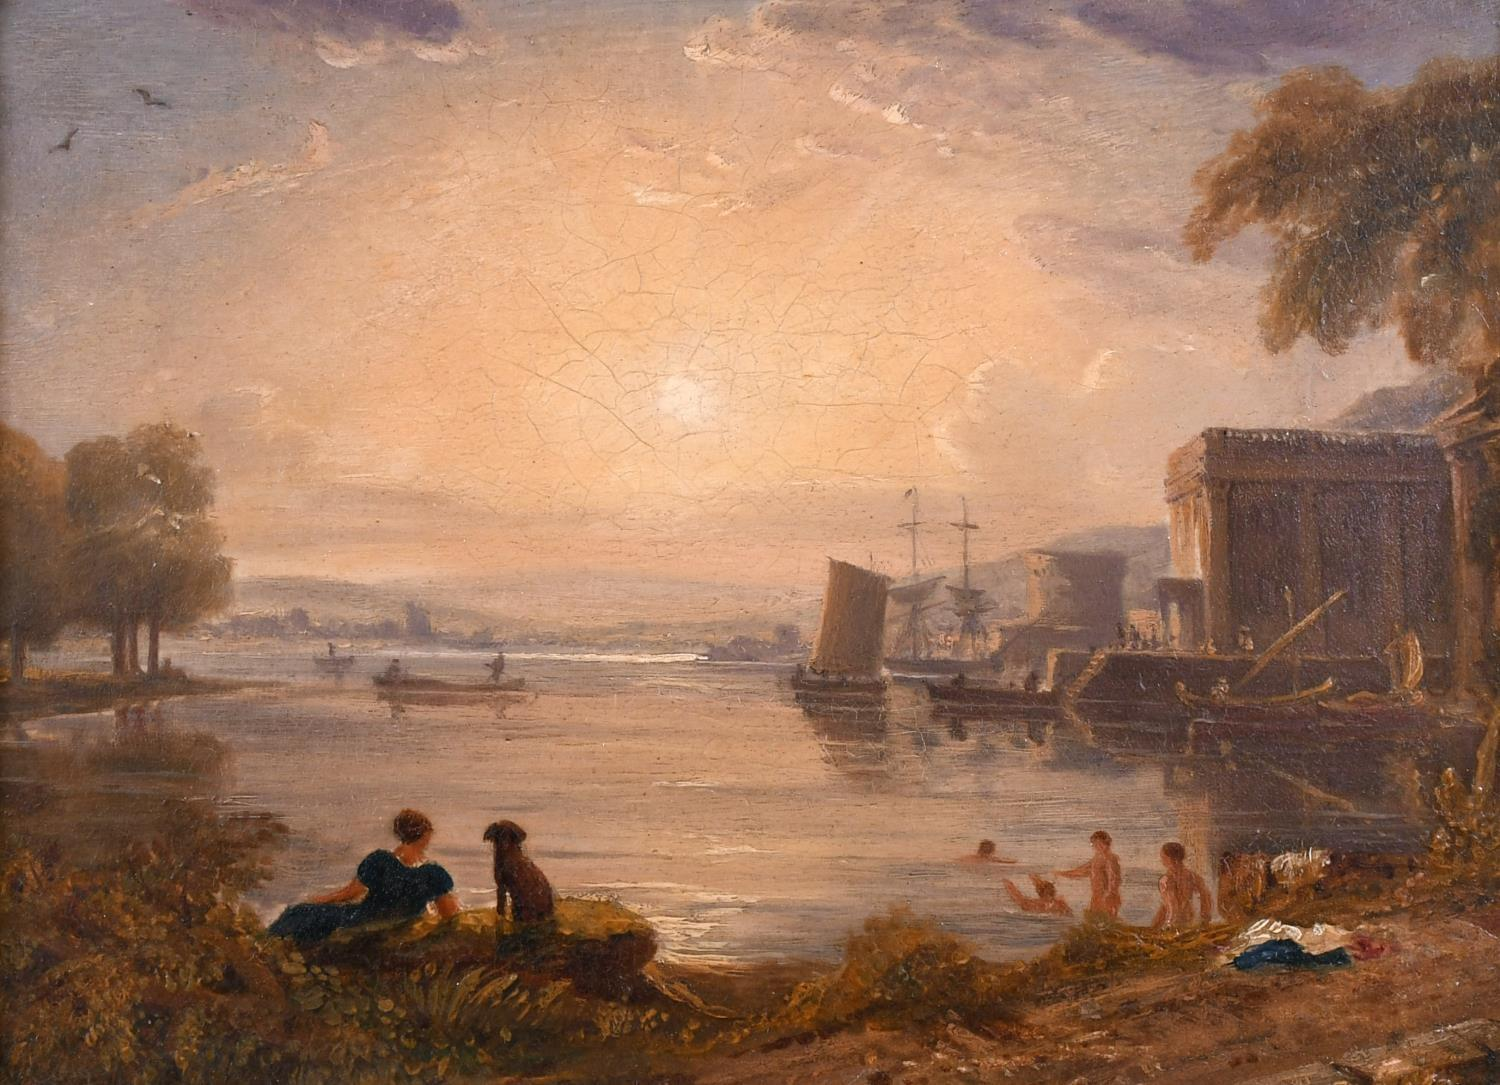 19th CENTURY ENGLISH OIL PAINTING - BATHERS CLASSICAL PORT LANDSCAPE AT SUNSET